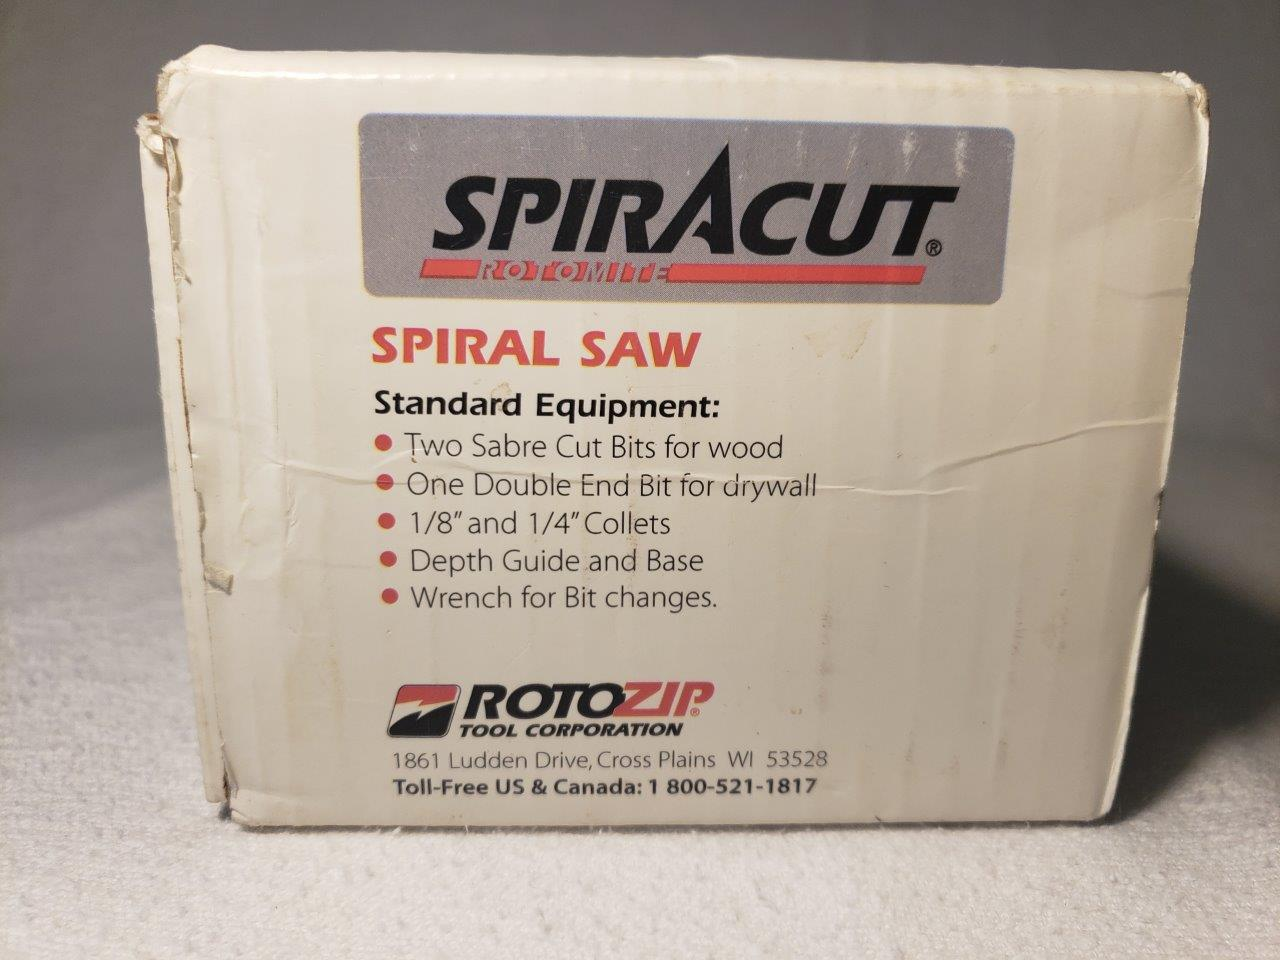 Rotozip RTM01 type 2 Spiracut Rotary RotoSaw Spiral Saw Tool Kit Rotomite